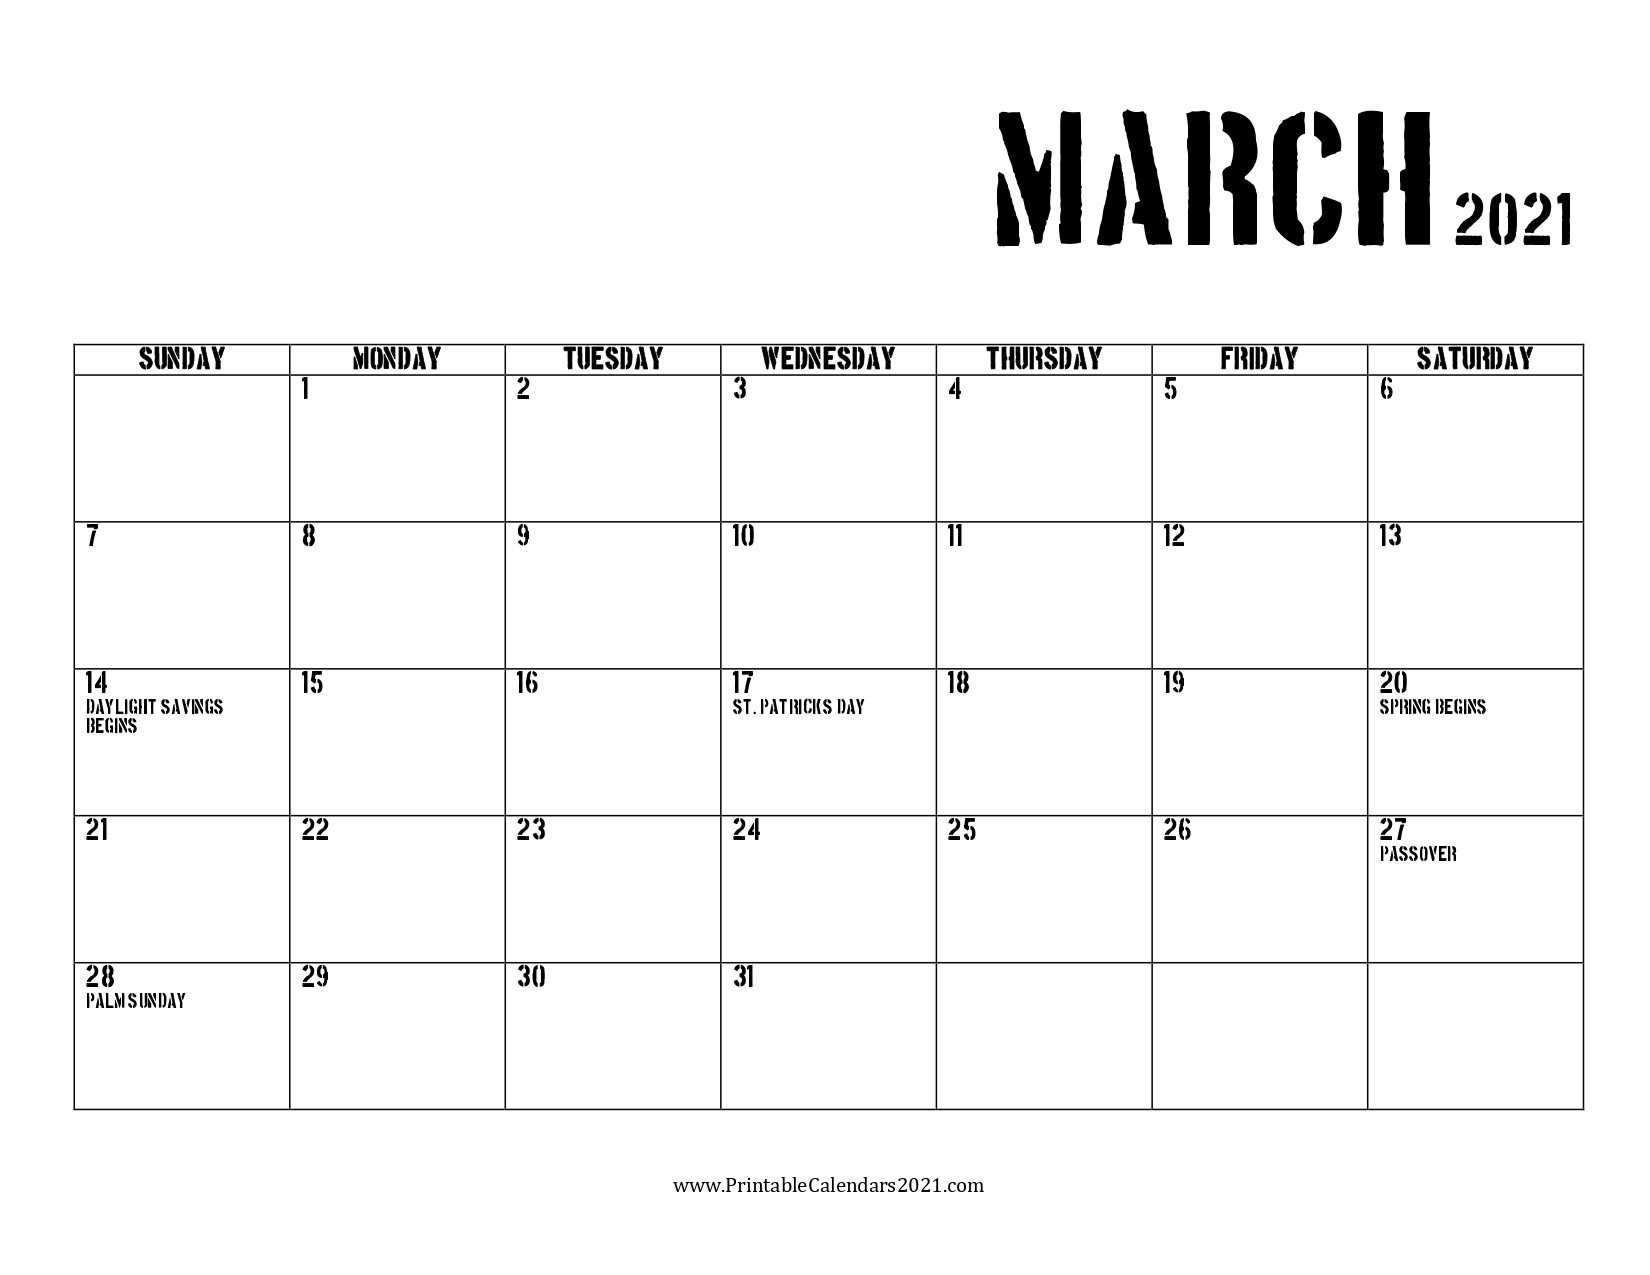 68+ Free March 2021 Calendar Printable With Holidays-2021 Calendar Printable Free Pdf March